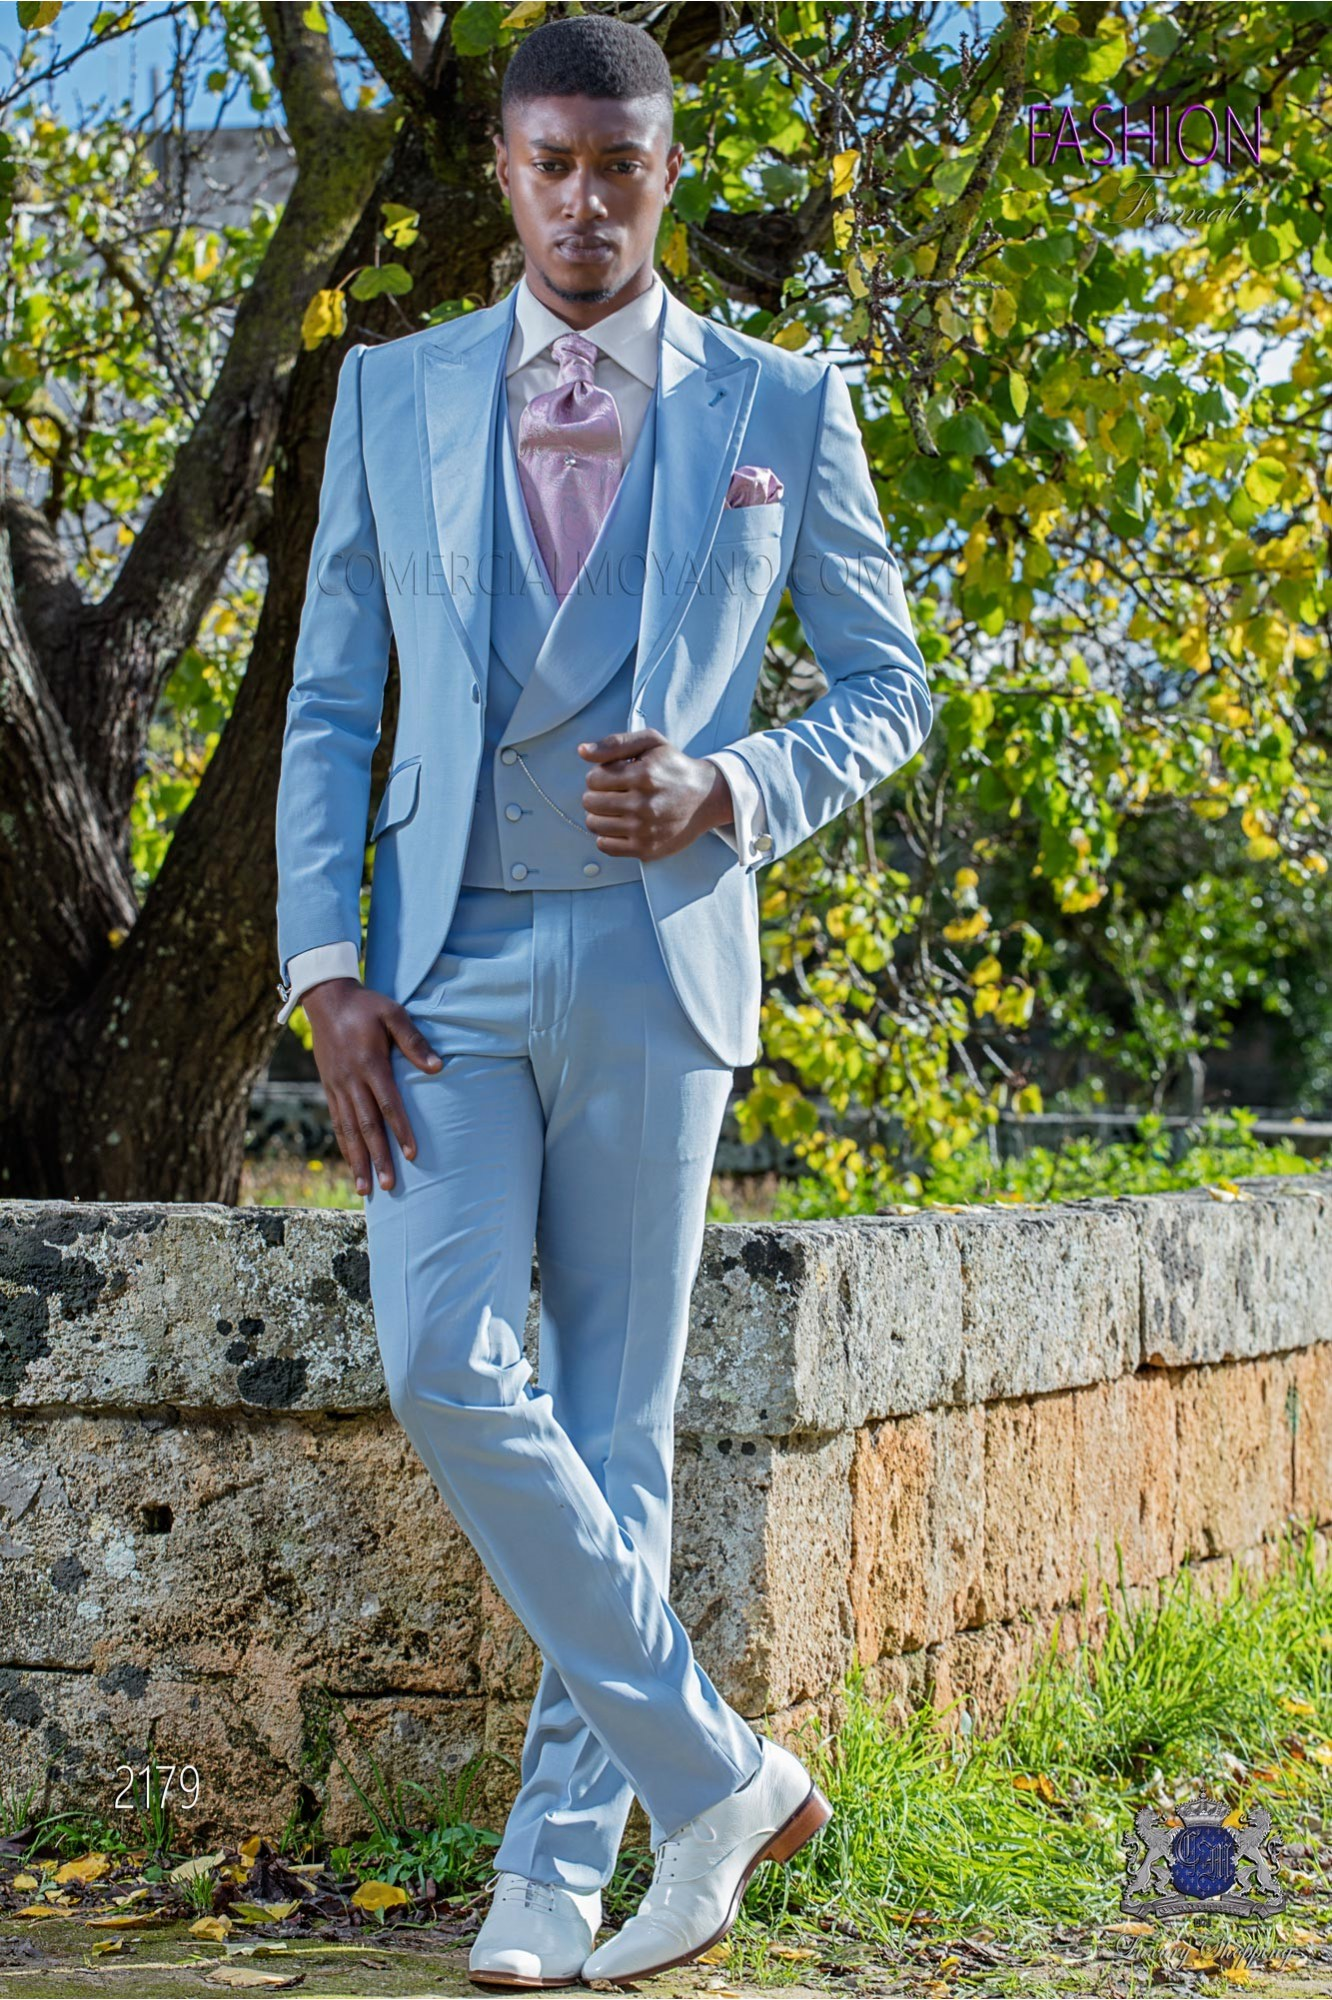 Italian bespoke light blue wedding suit, model: 2179 Ottavio Nuccio ...